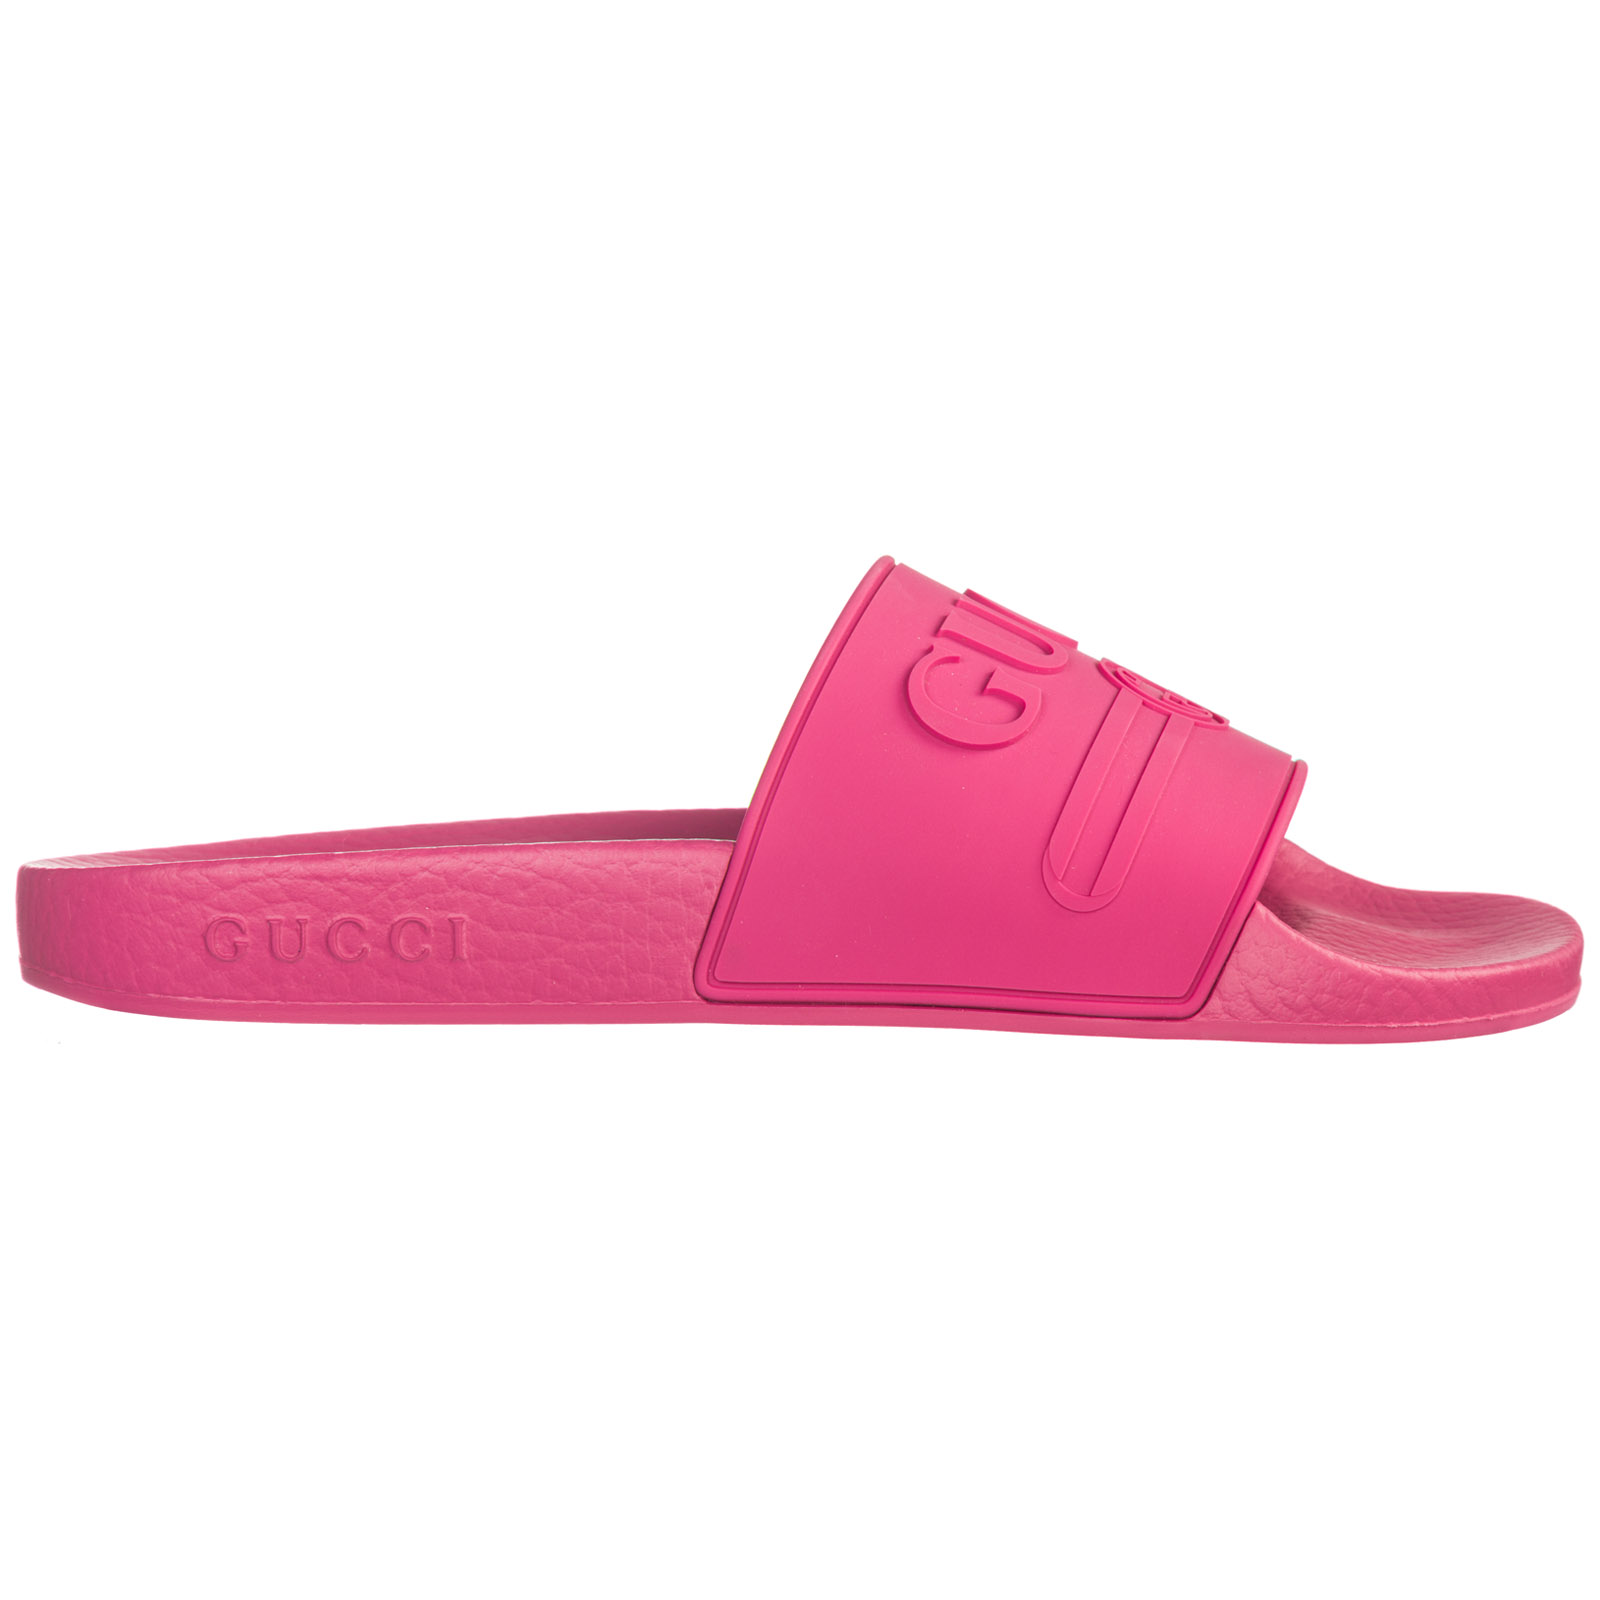 f69fa5b49bae Gucci Women s Rubber Slippers Sandals Logo In Pink